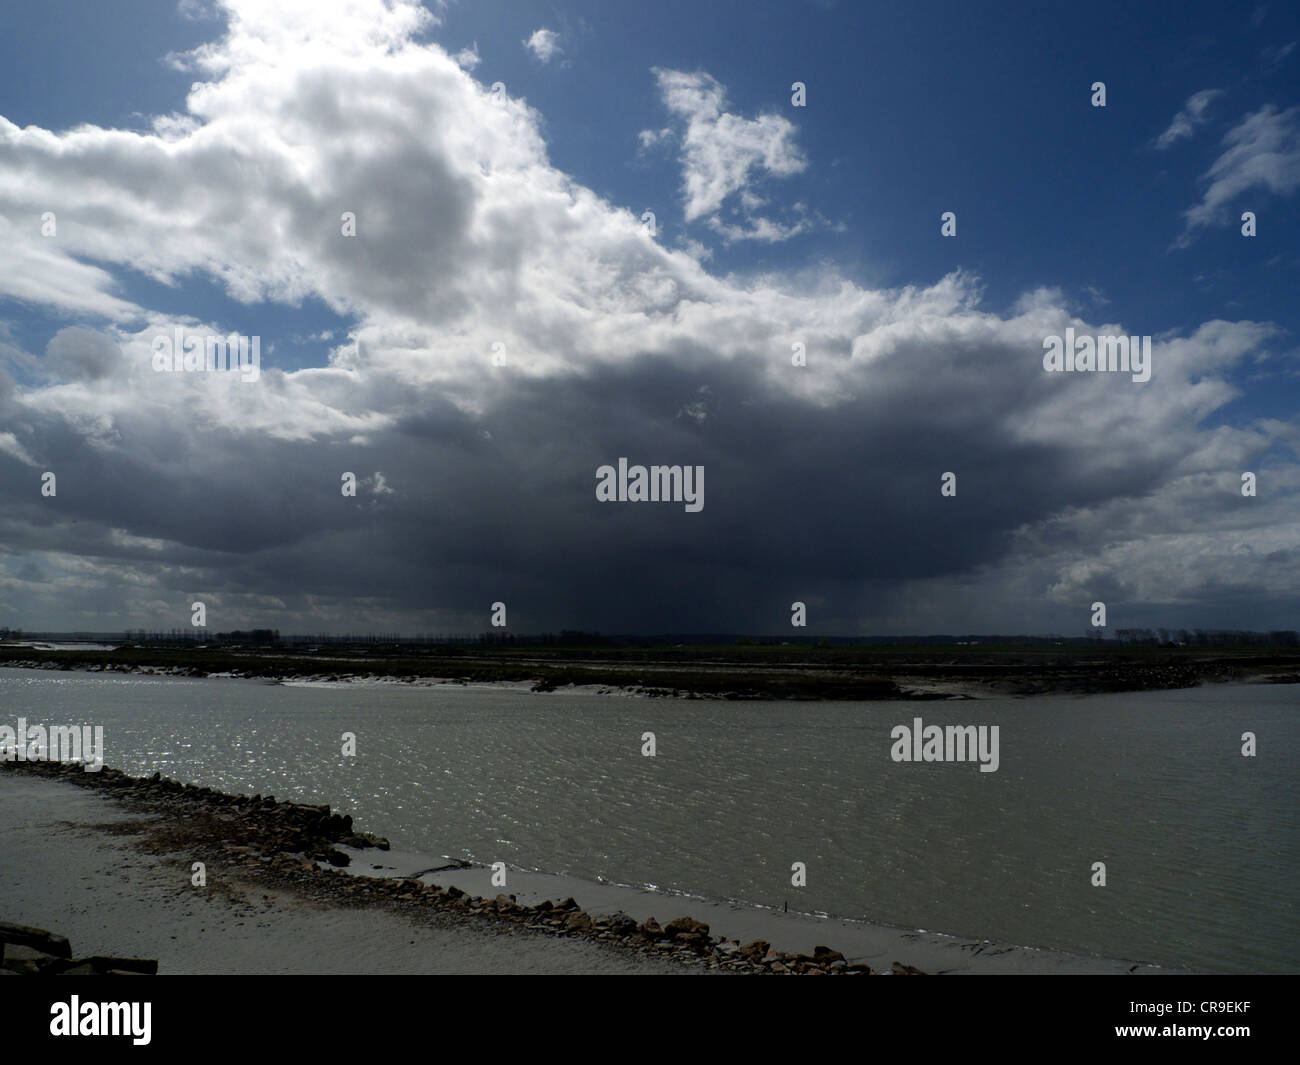 Black storm cloud with silvery lining, sun and blue sky, shoreline. - Stock Image